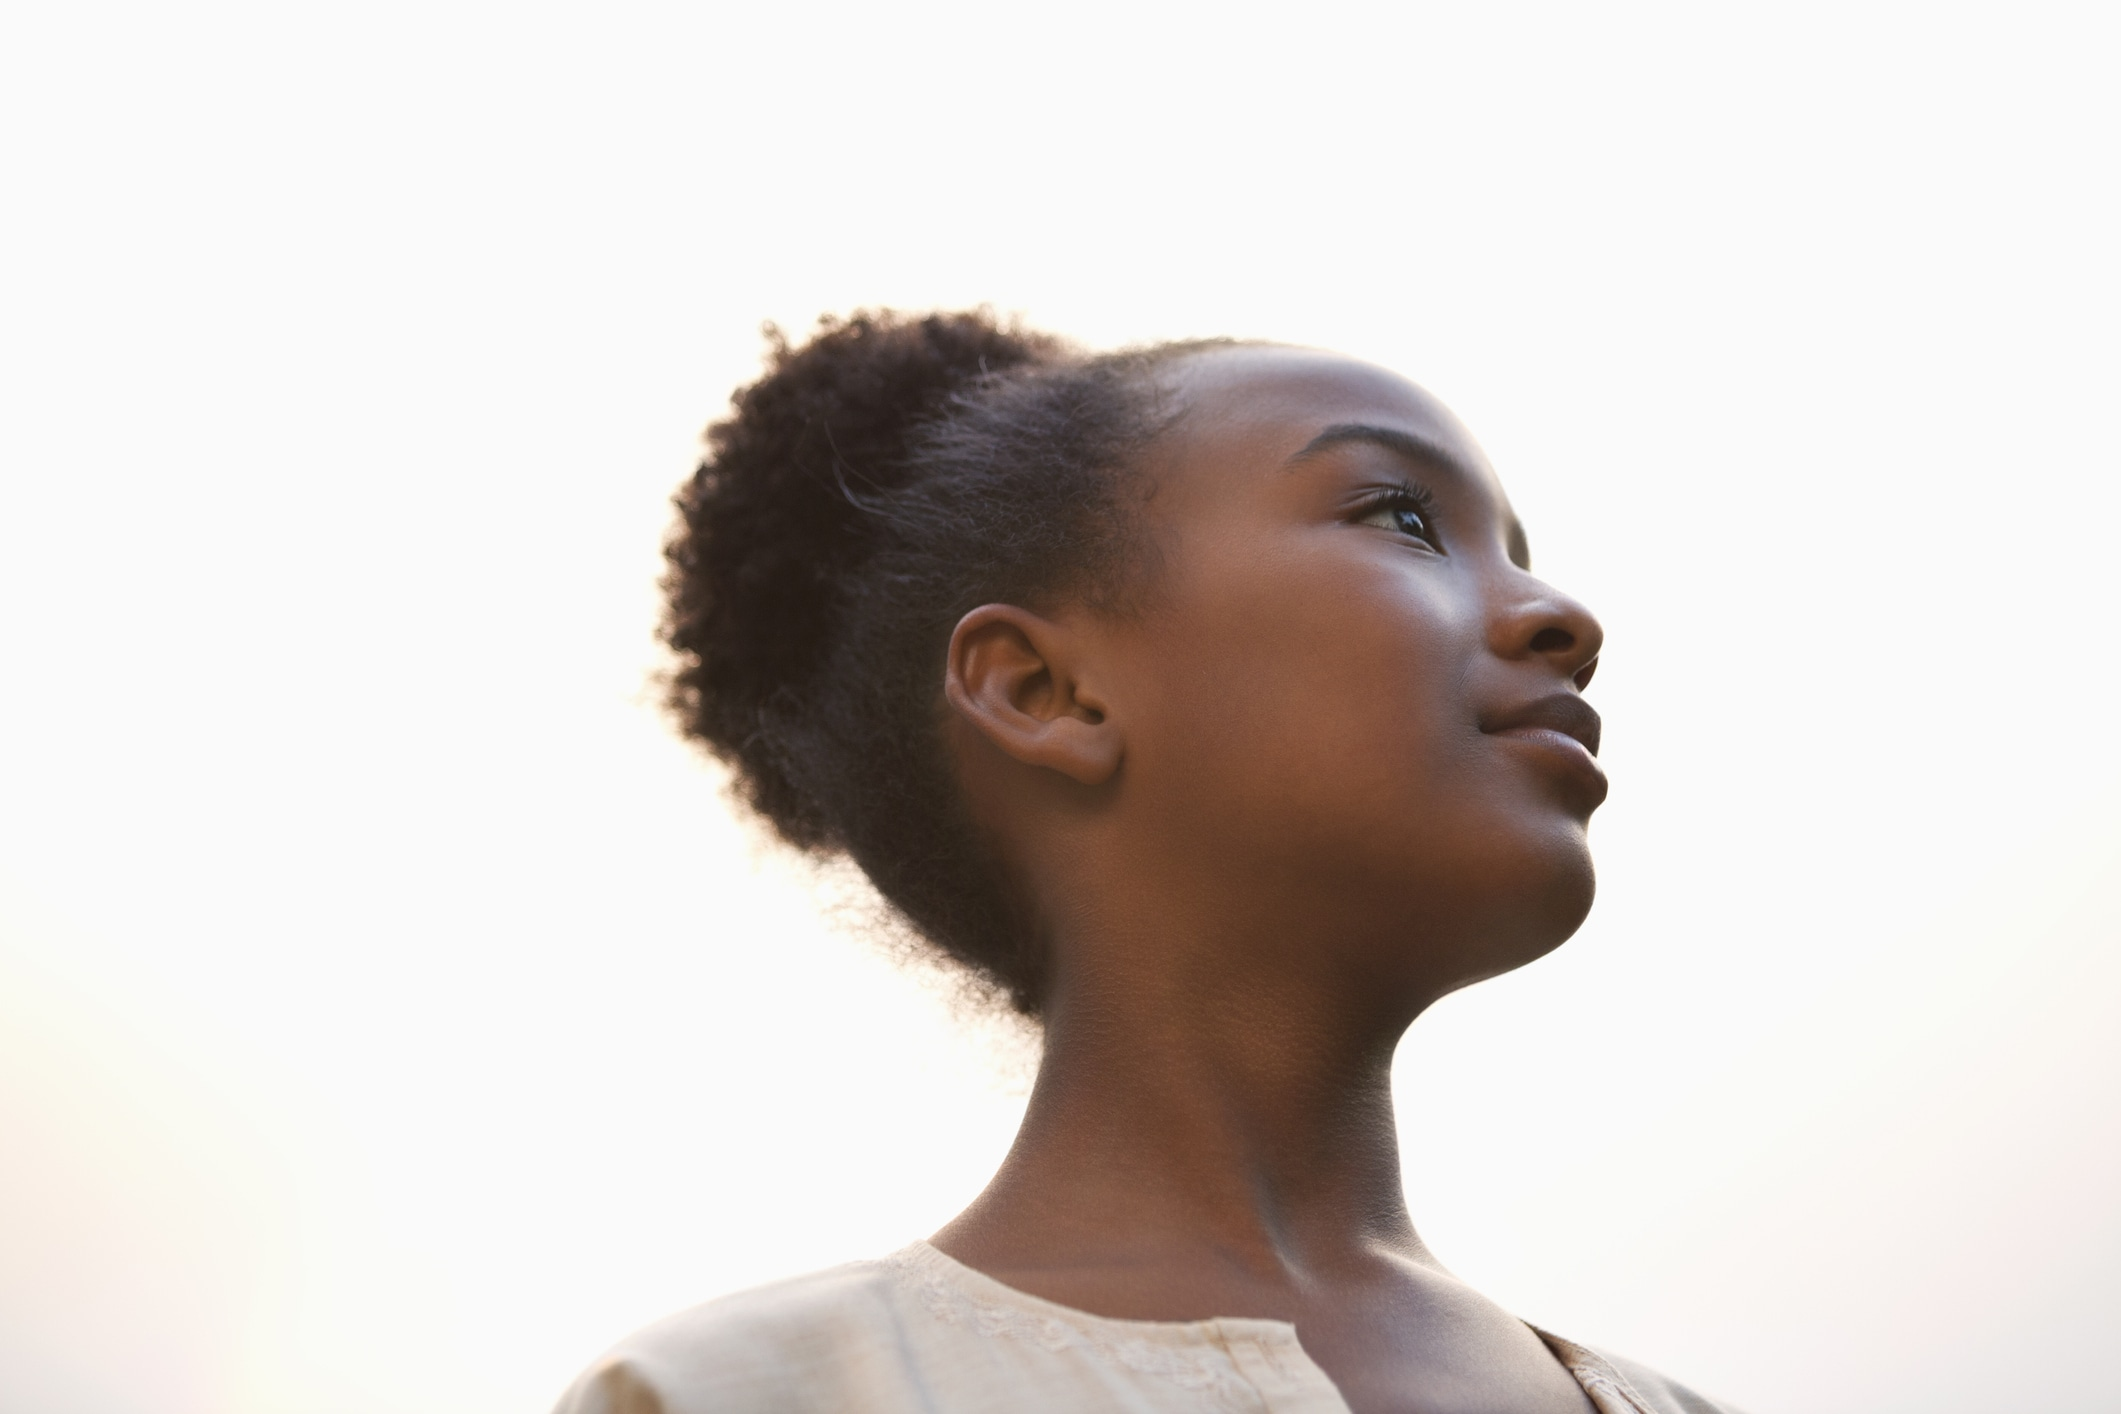 New Report Confirms Black Girls Are Often Viewed As More Mature Than White Girls, Leading To Harsher Treatment In Schools